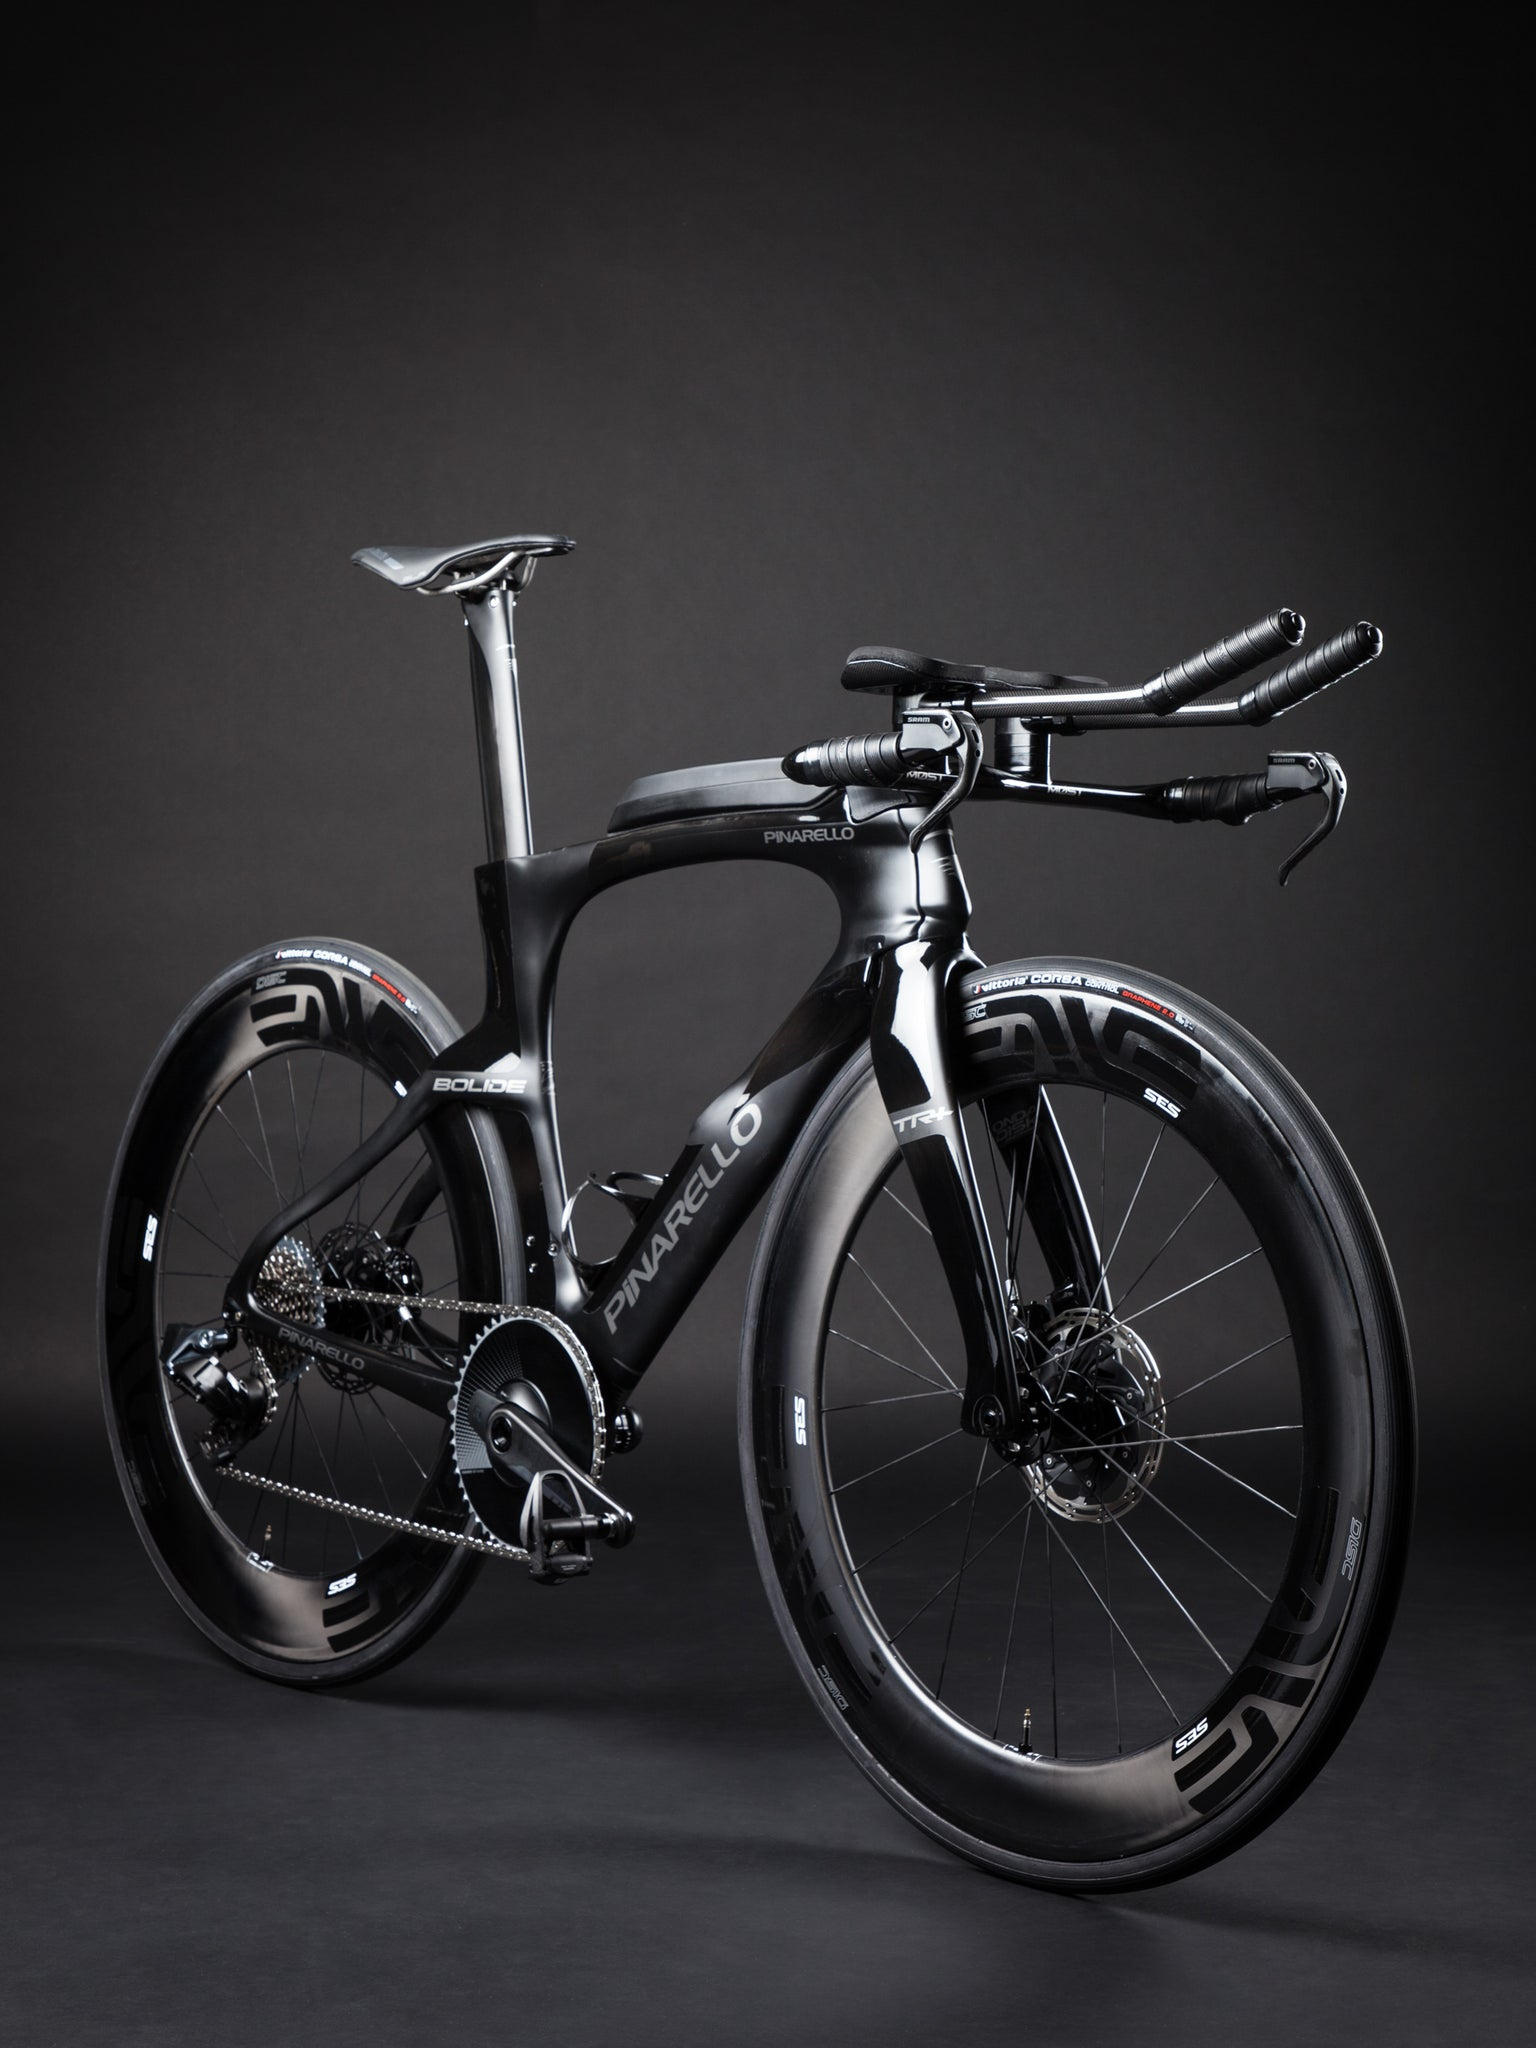 A Blacked Out Pinarello Bolide Gallery front angle full bike